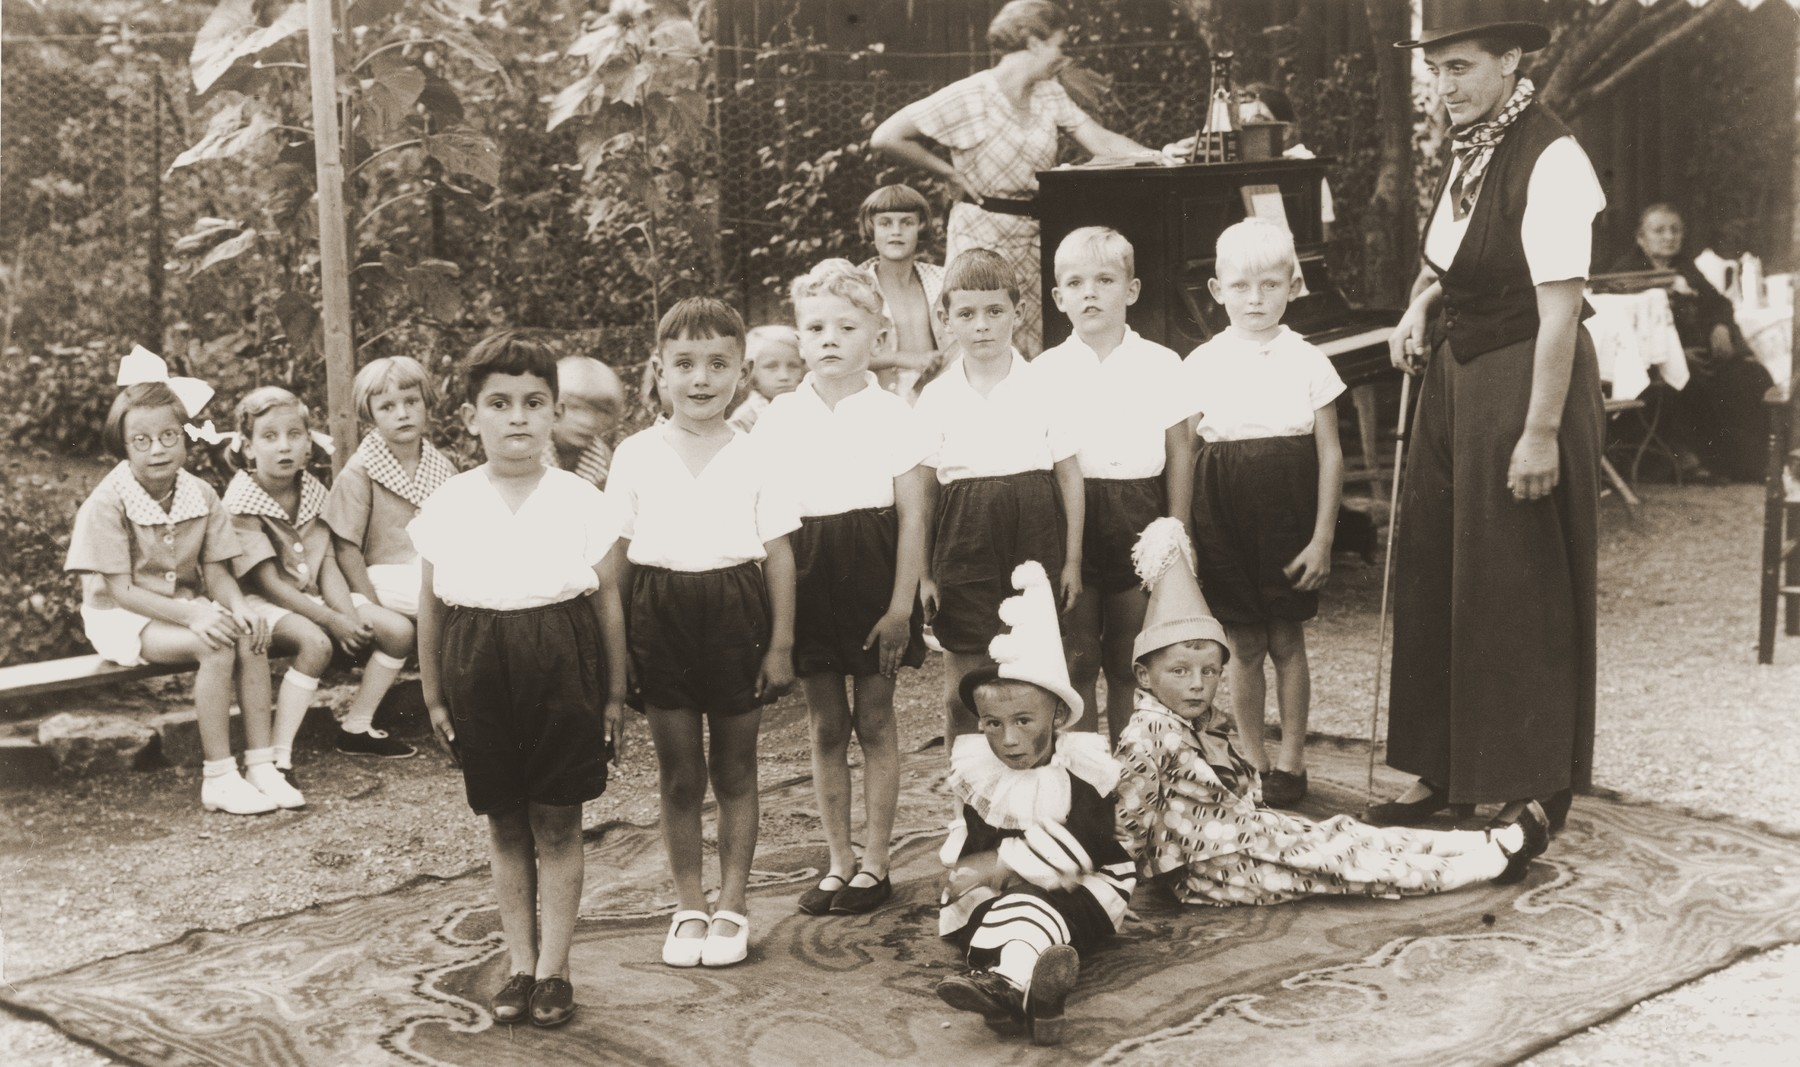 A children's performance at a kindergarten in Erfurt.  Among those pictured are Lore Dublon (seated second from the left) and Peter Heimann (the first boy on the left). The kindergarten was operated by Frau Topf.